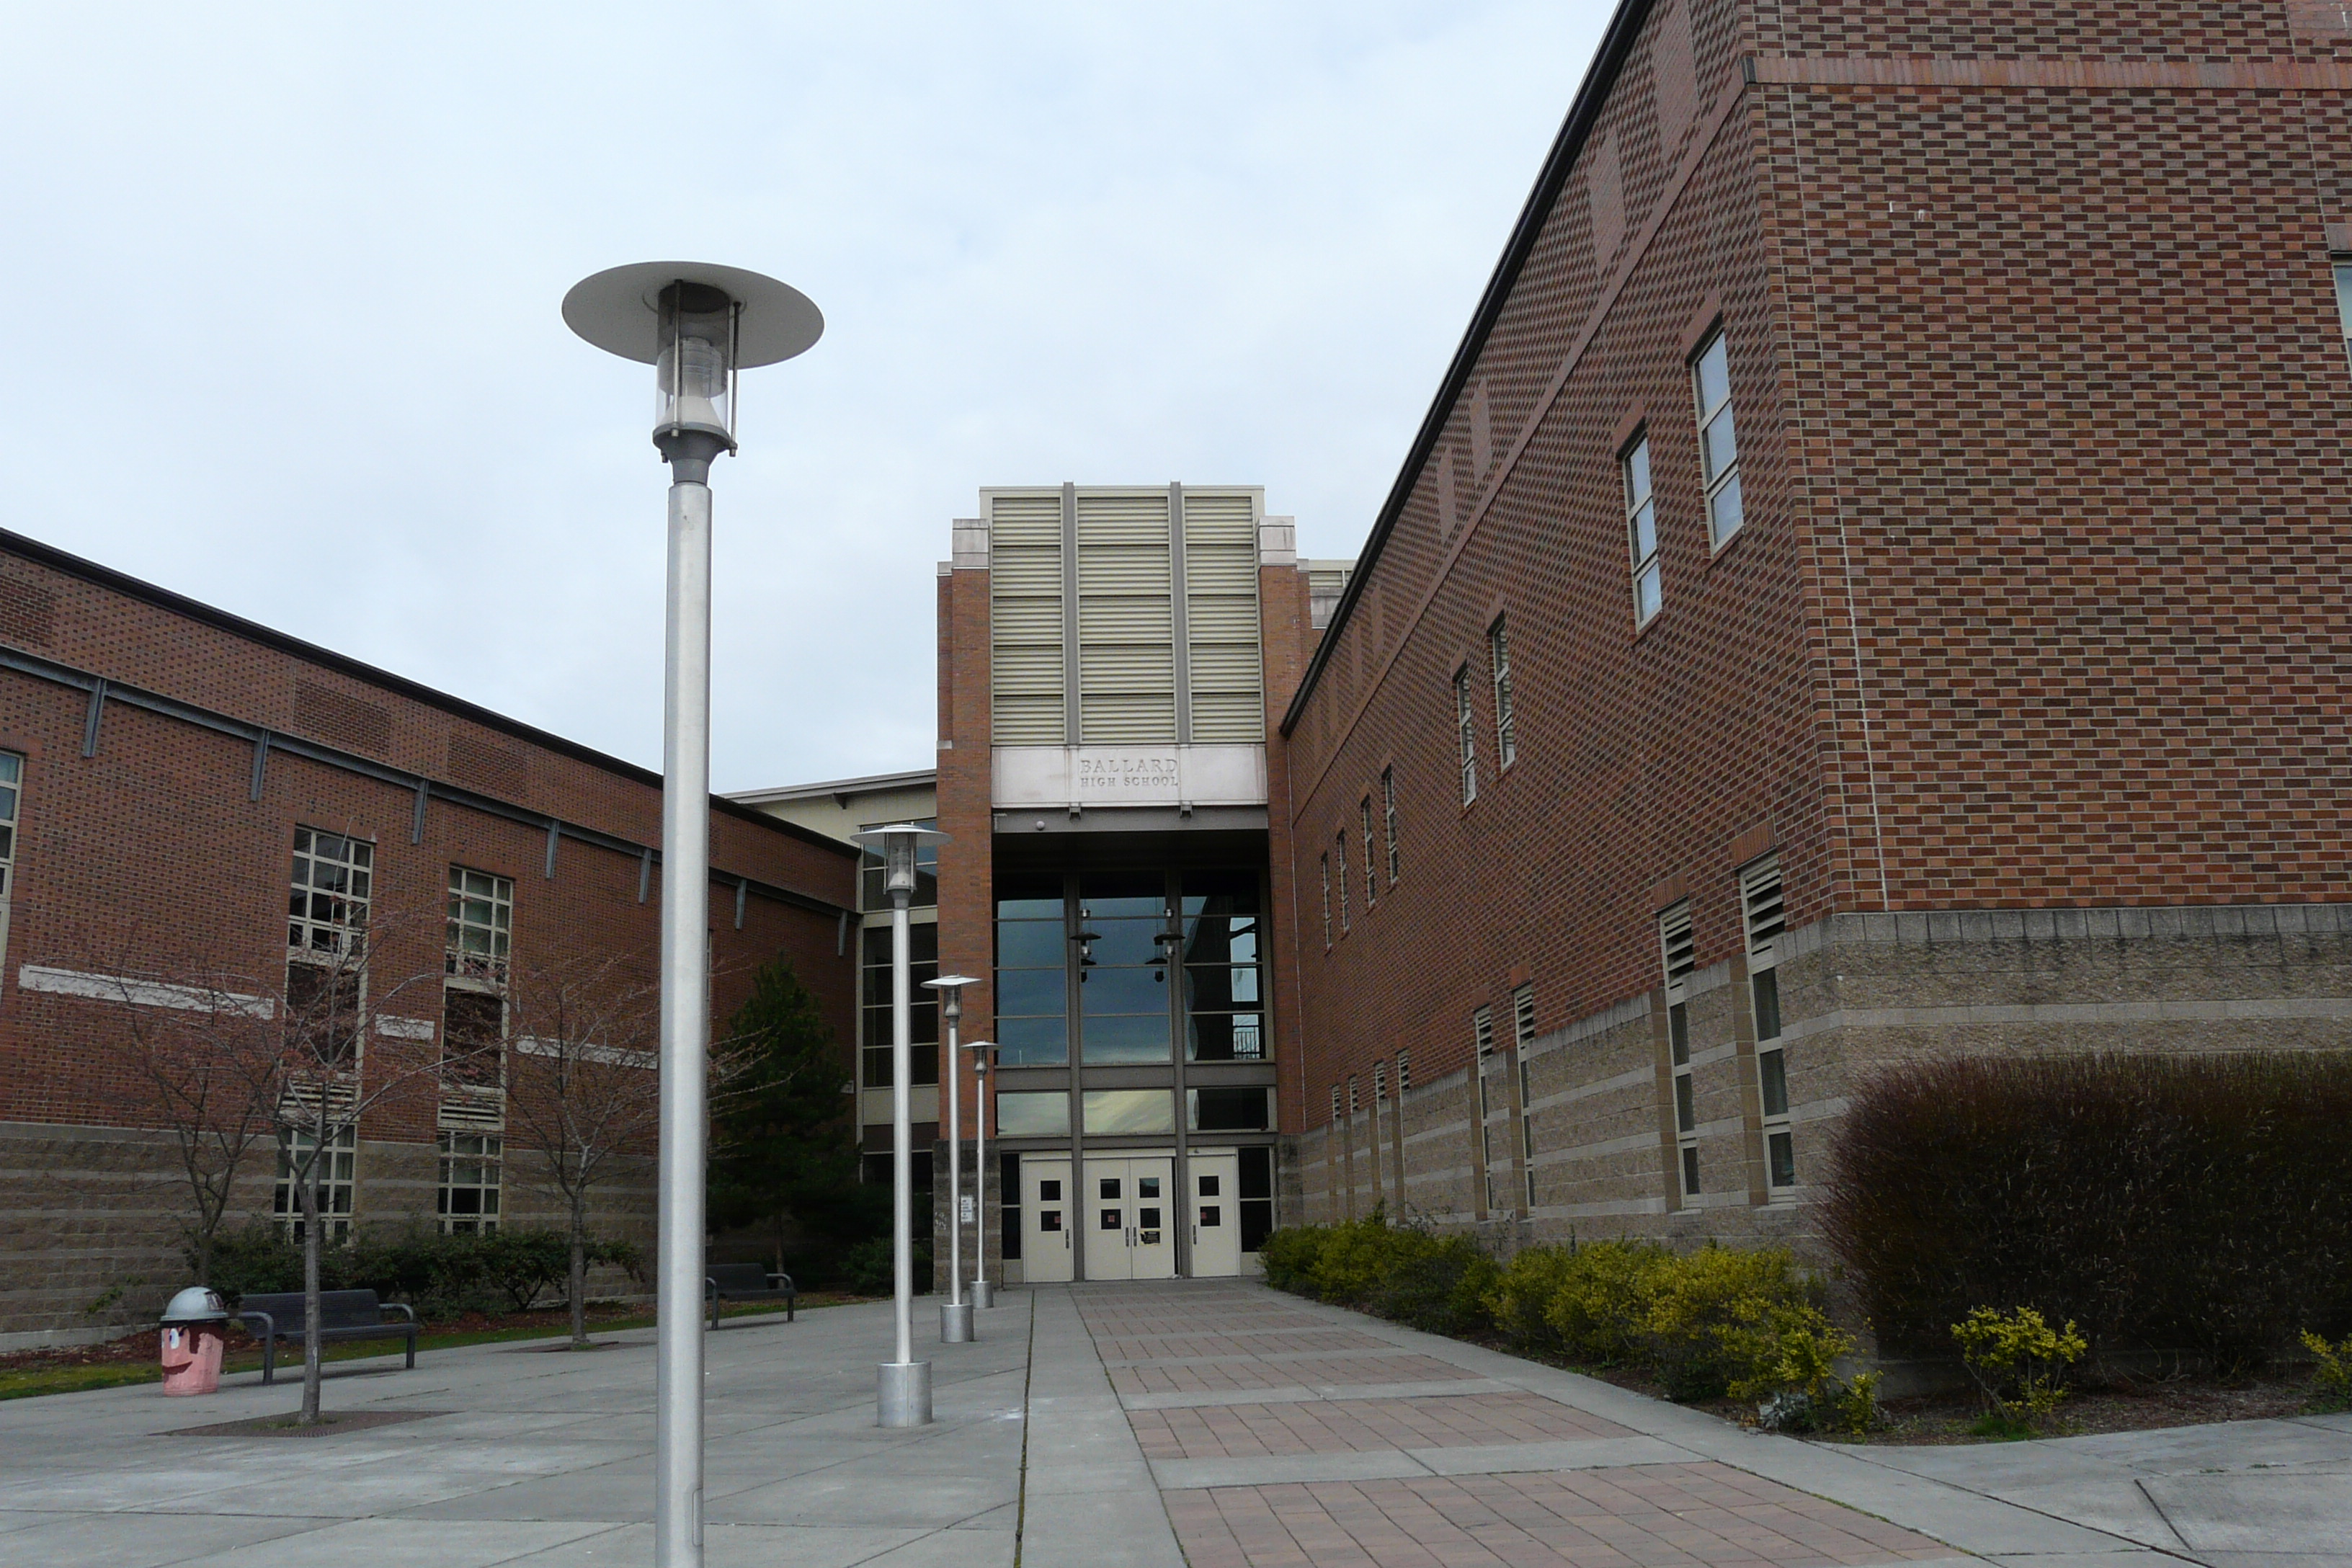 ballard high school (seattle, washington)